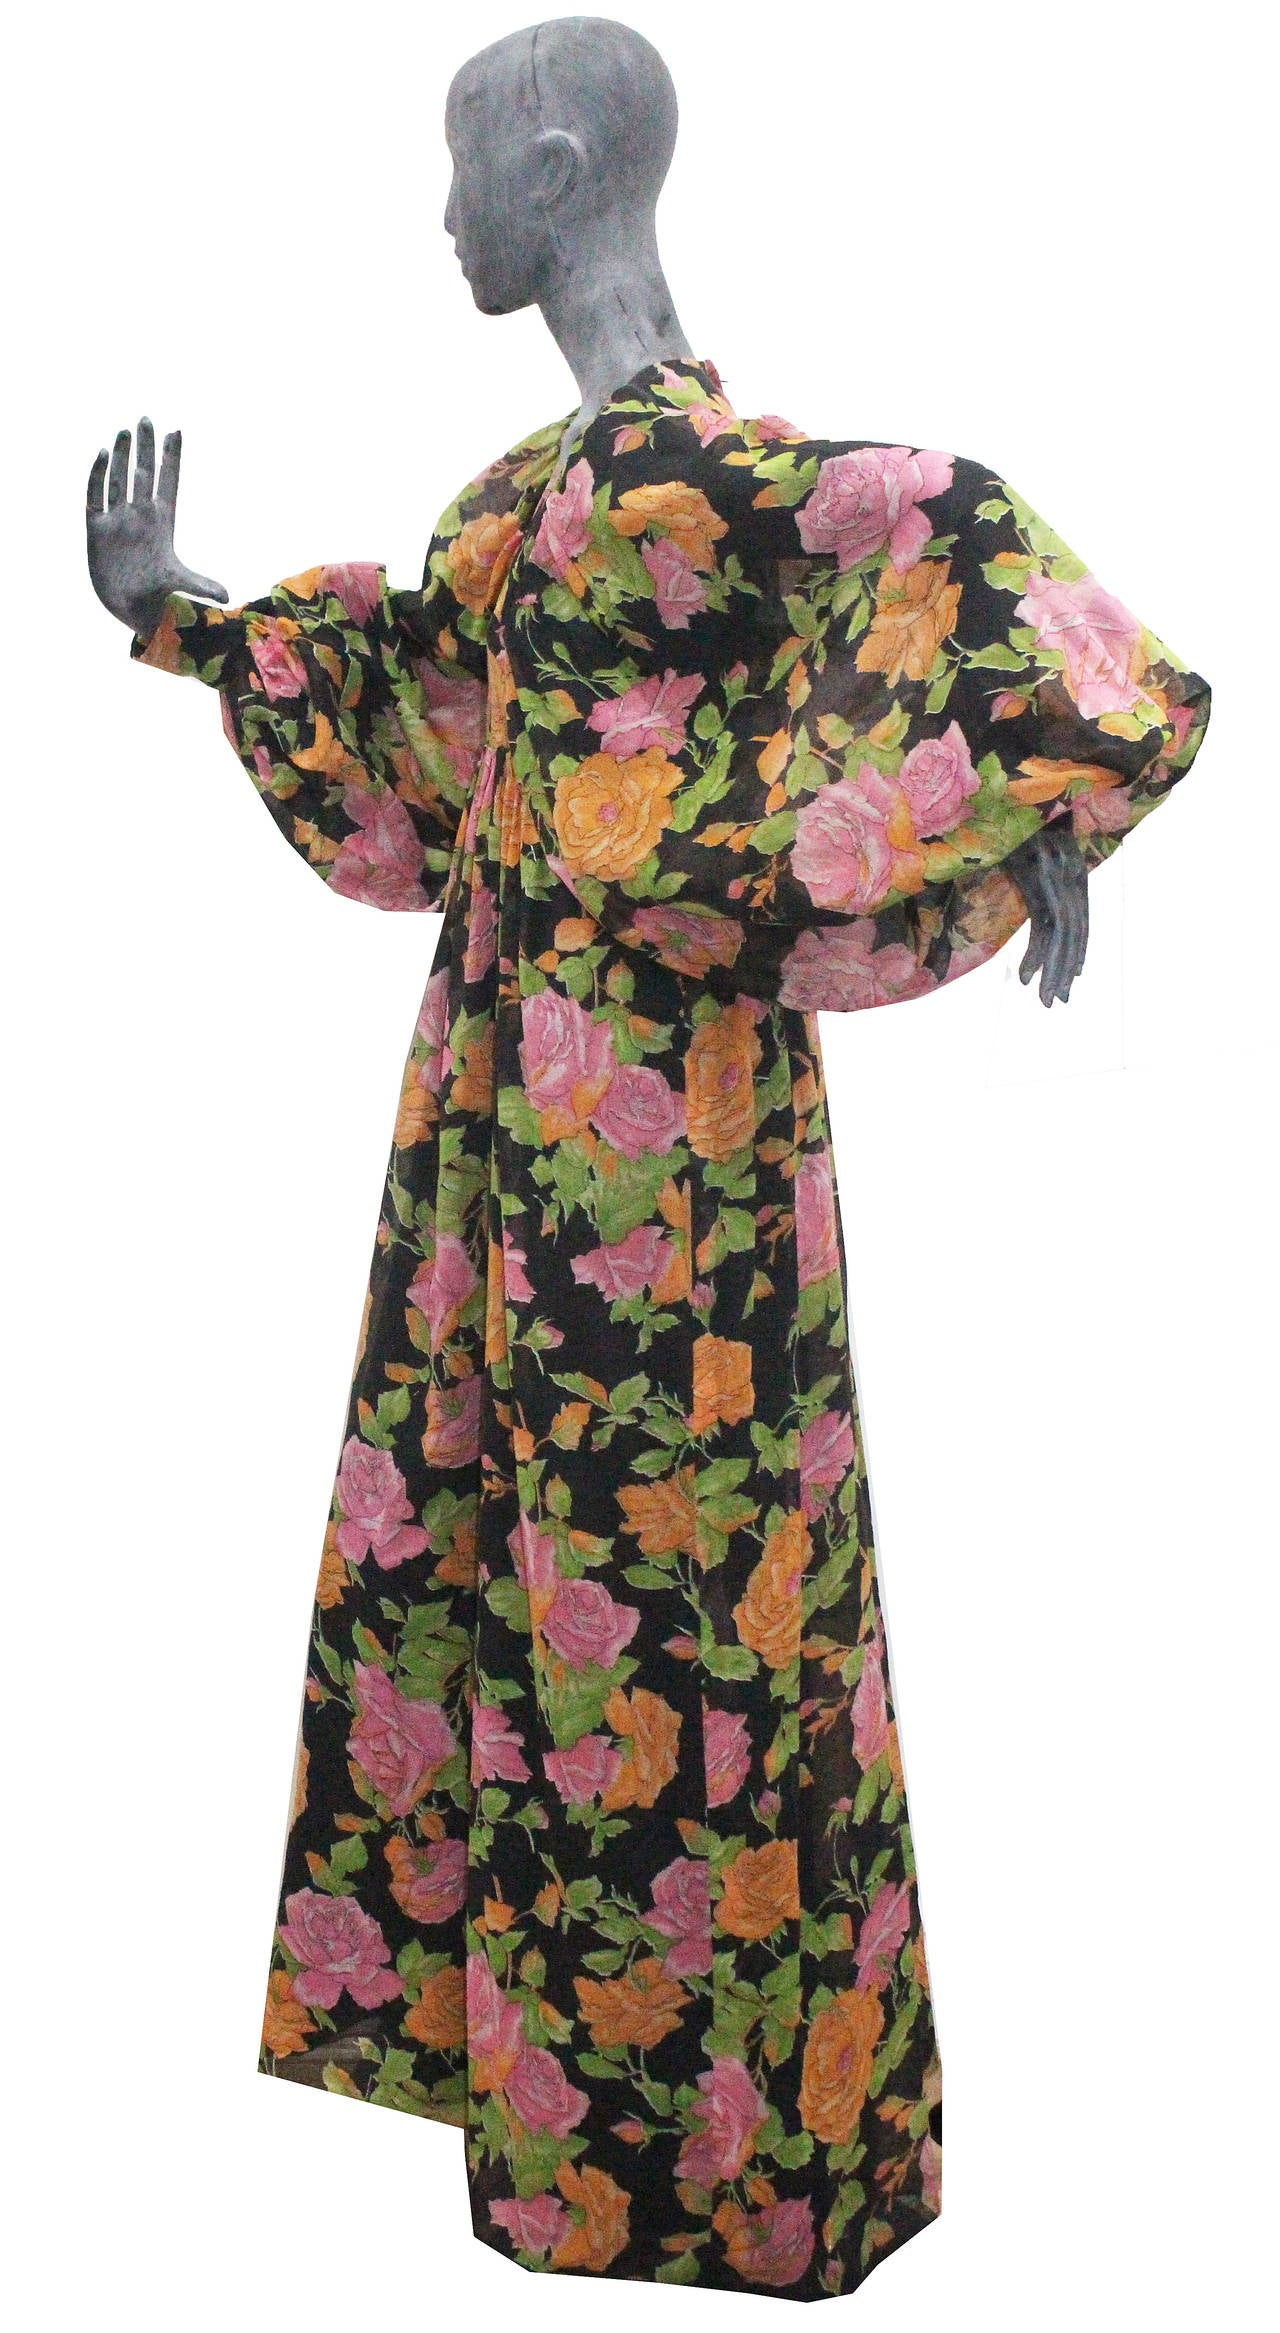 British Early 70s Floral Maxi Dress With Balloon Sleeves